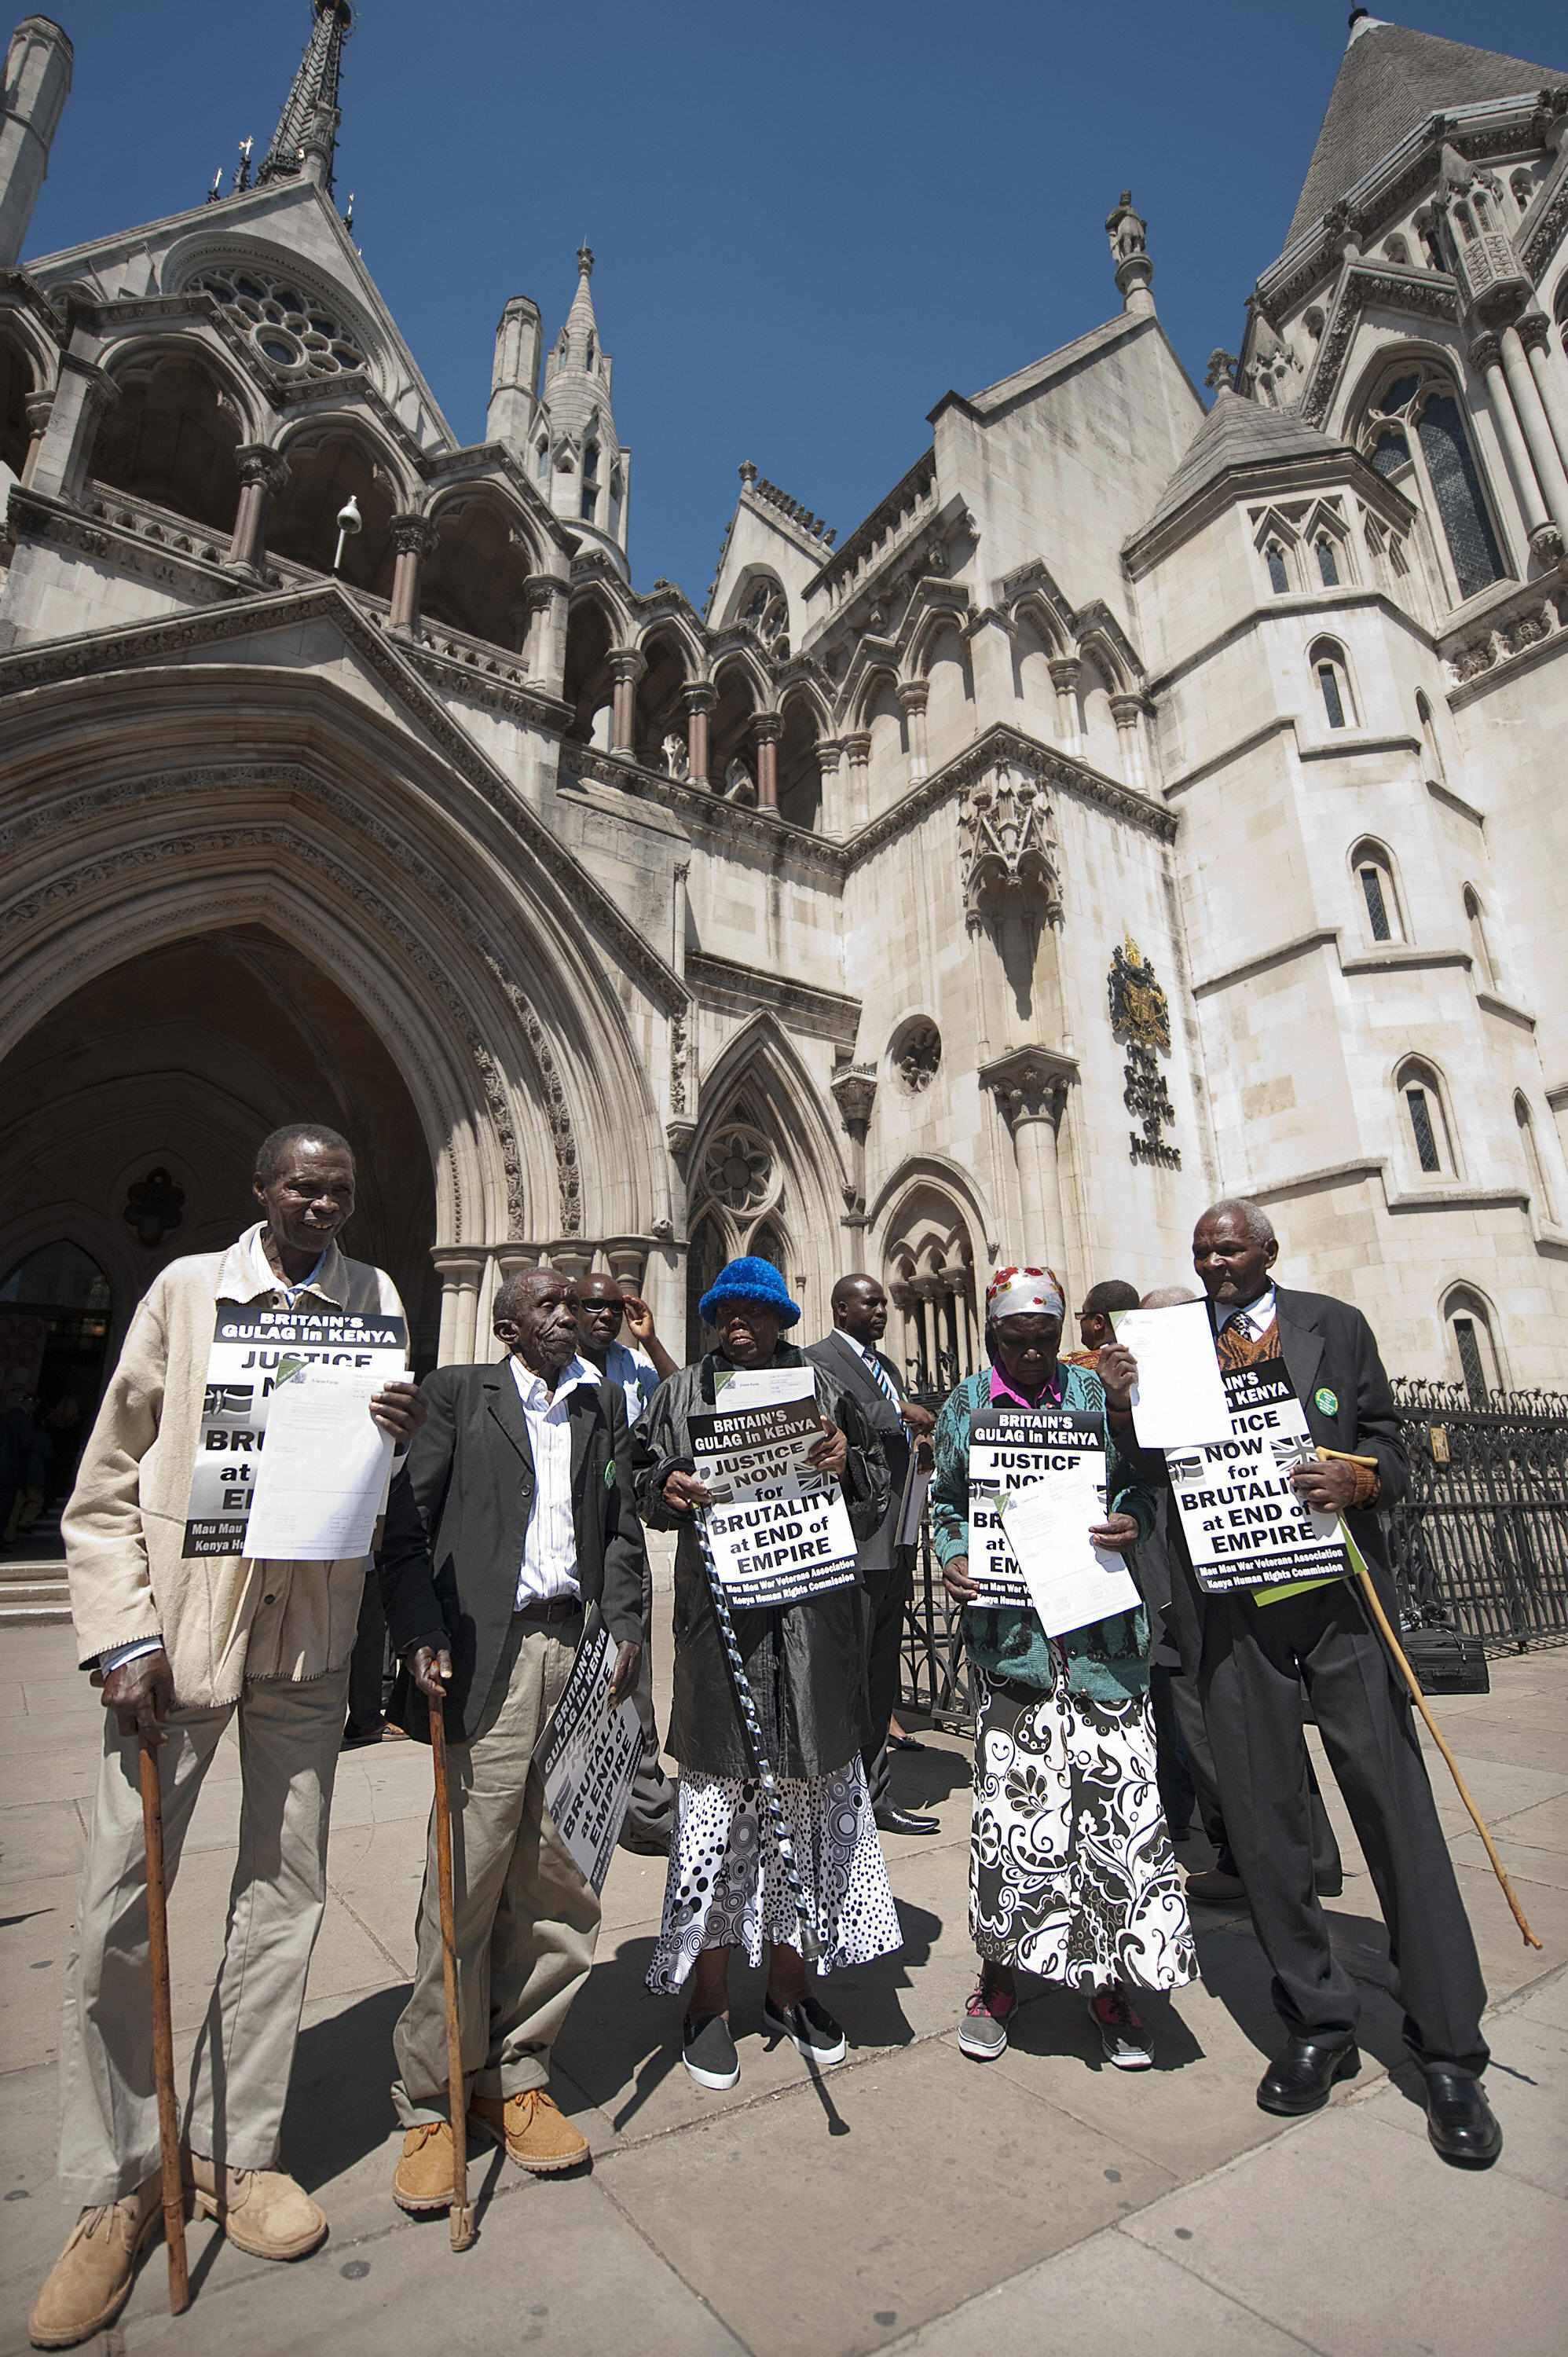 The three Kenyans who were tortured by British forces in the 1950s are joined by supporters at a demonstration outside the Royal Courts of Justice. (BEN STANSALL/AFP/Getty Images)